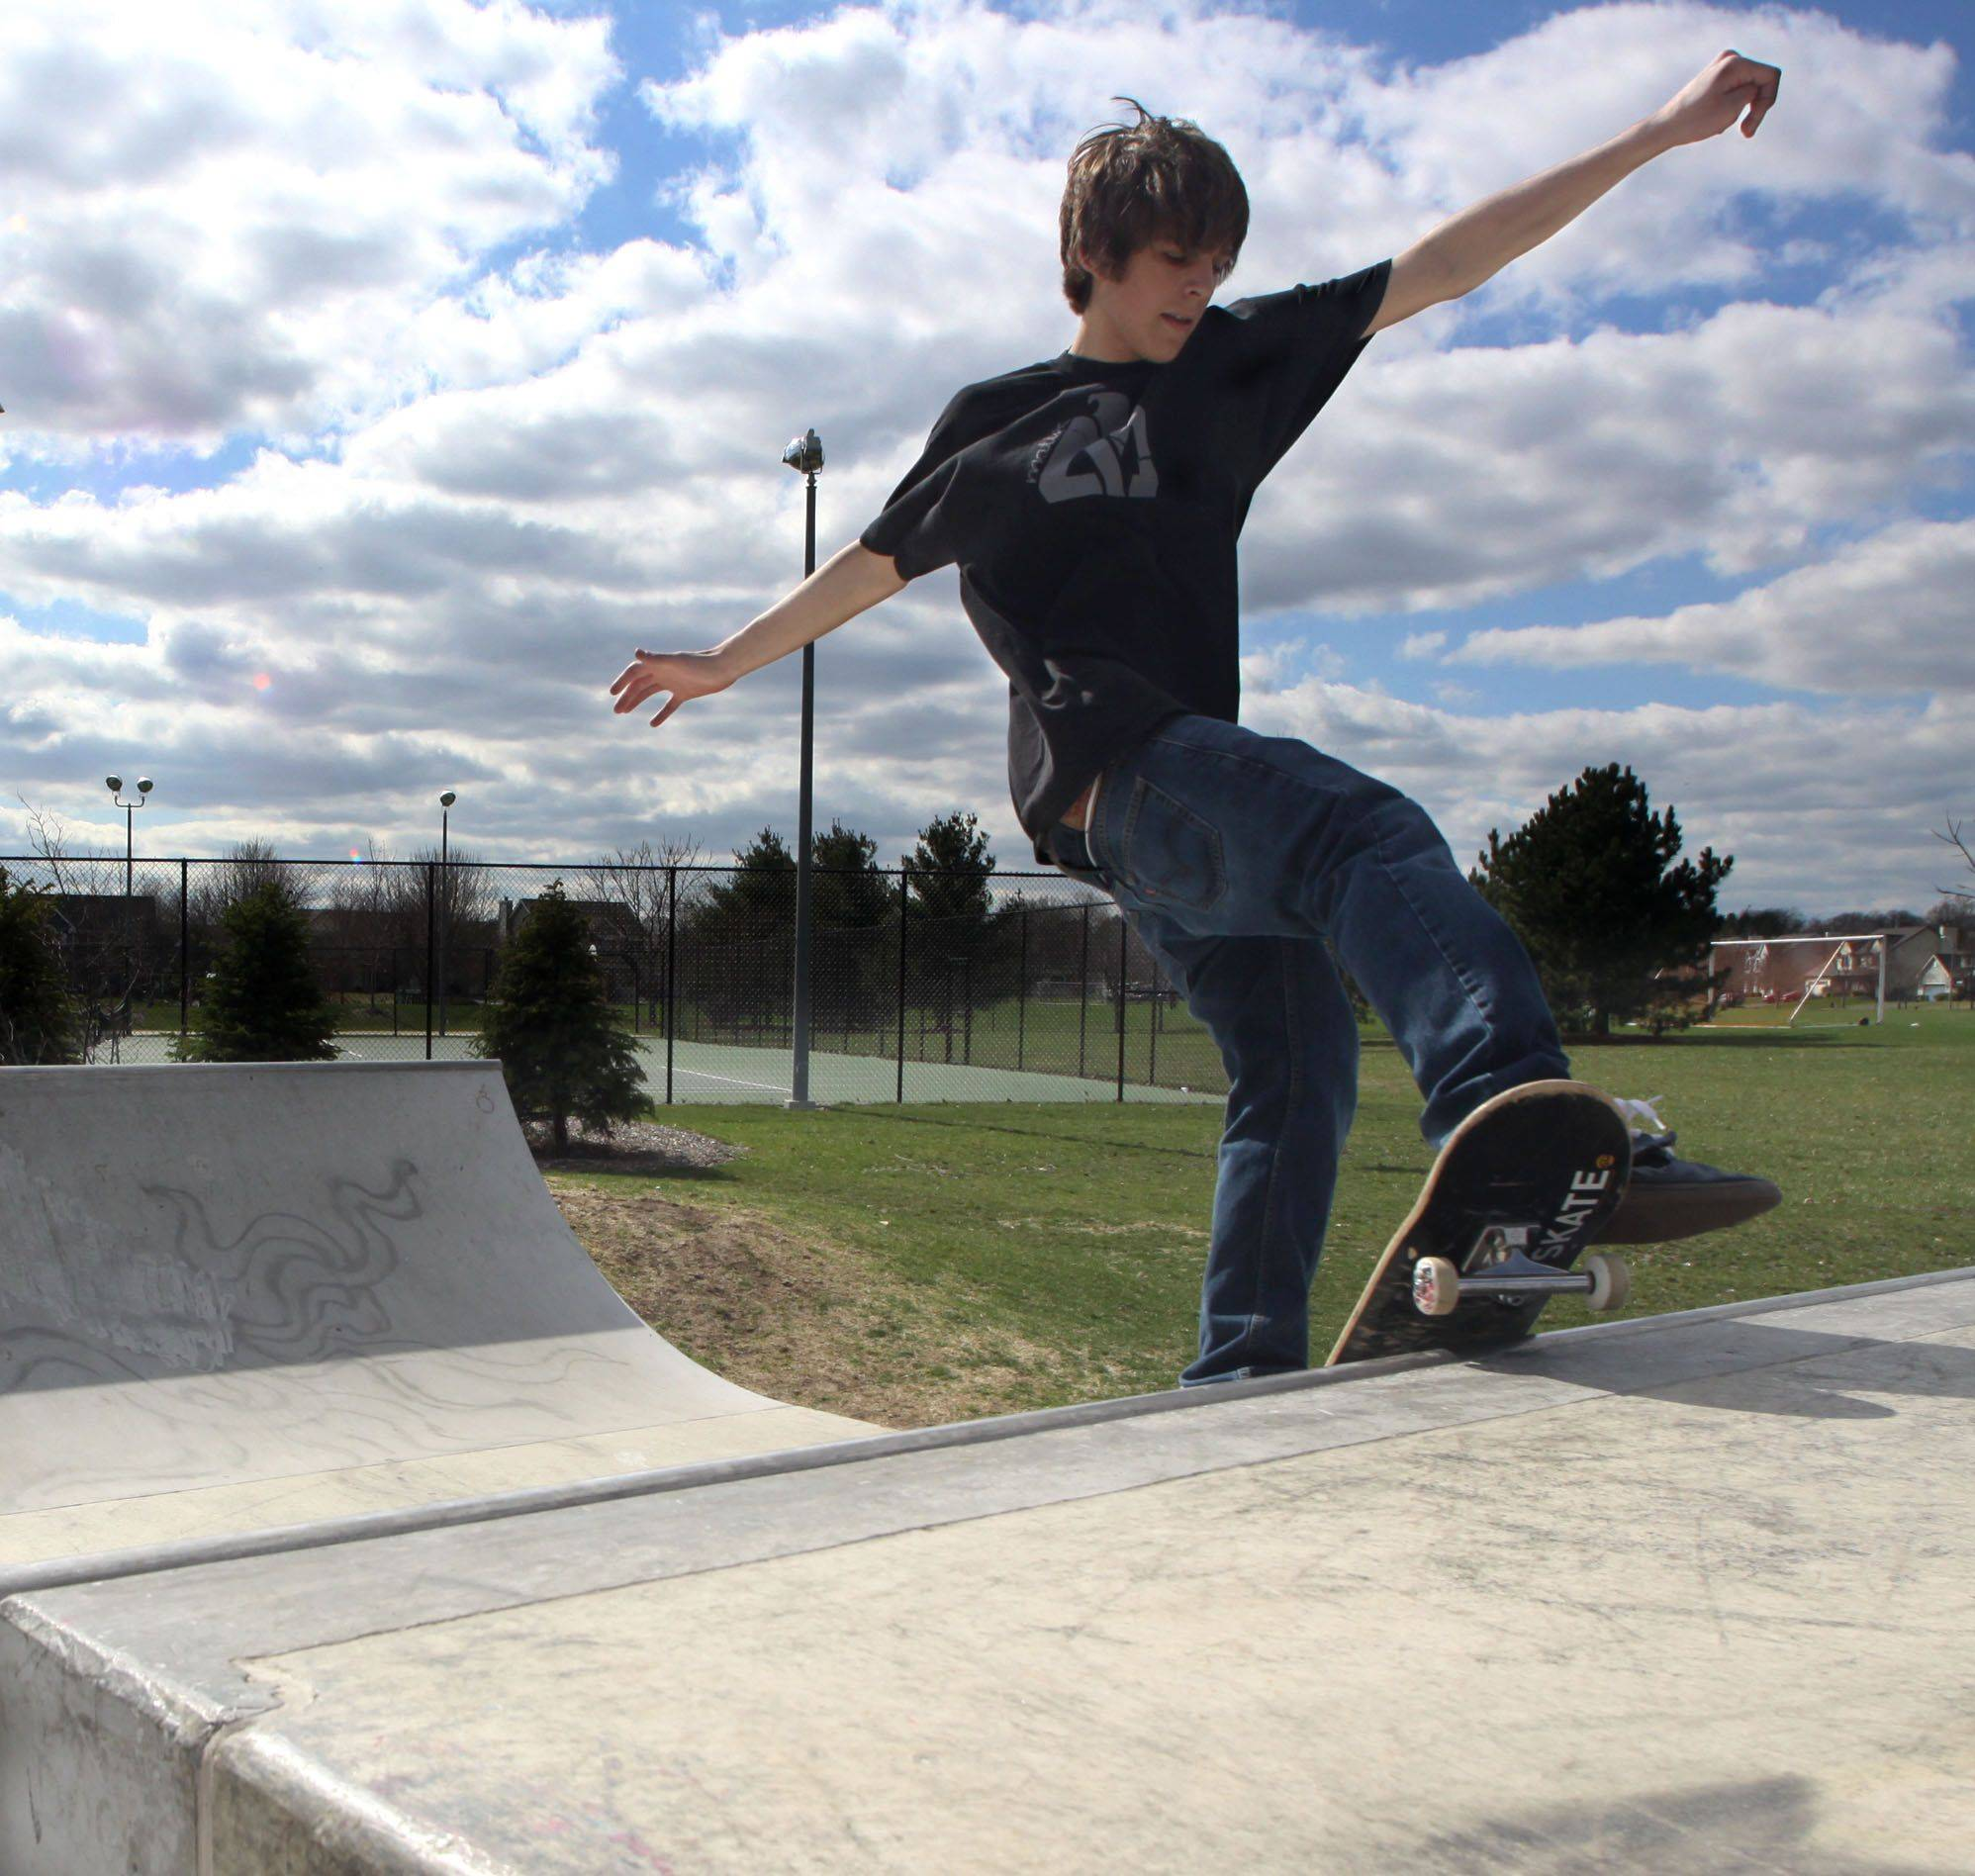 Logan Burton, 15, of Algonquin performs on the half pipe Monday at the skate area of Huffman Park in West Dundee. The Dundee Township Park District is trying to decide how to combat graffiti and litter at the park.